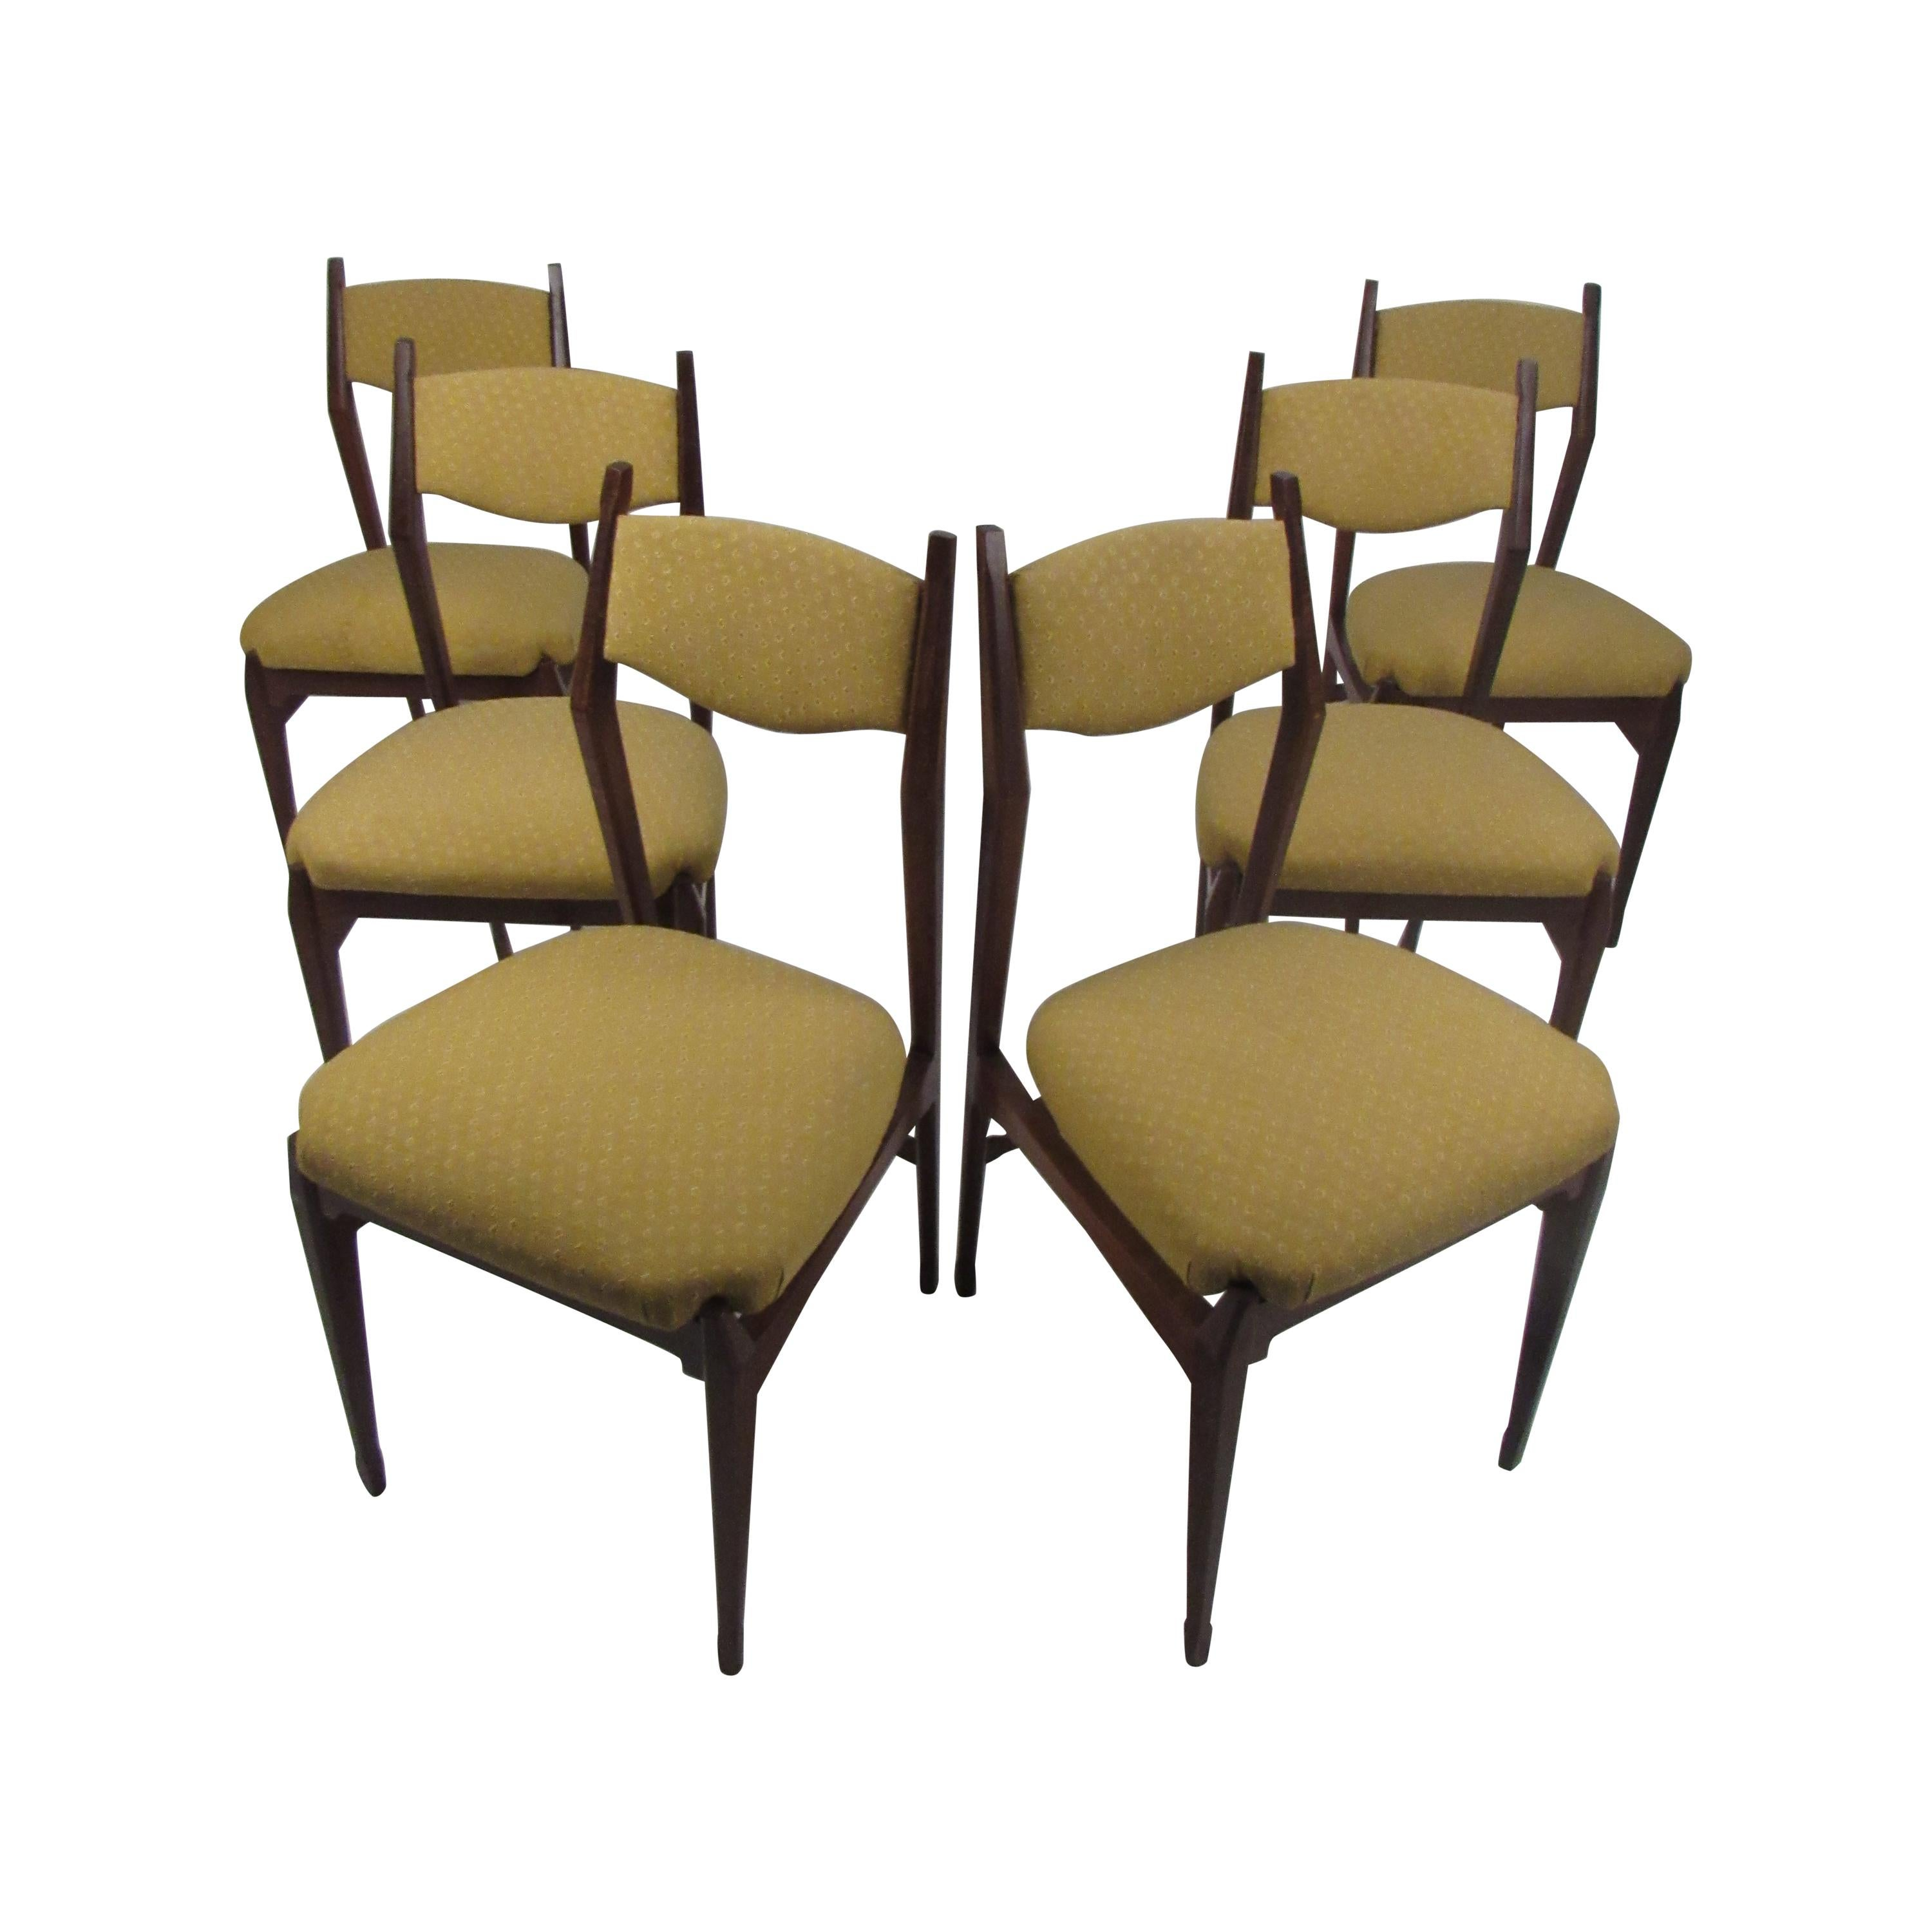 Set of Six Vintage Modern Italian Dining Chairs by Gio Ponti